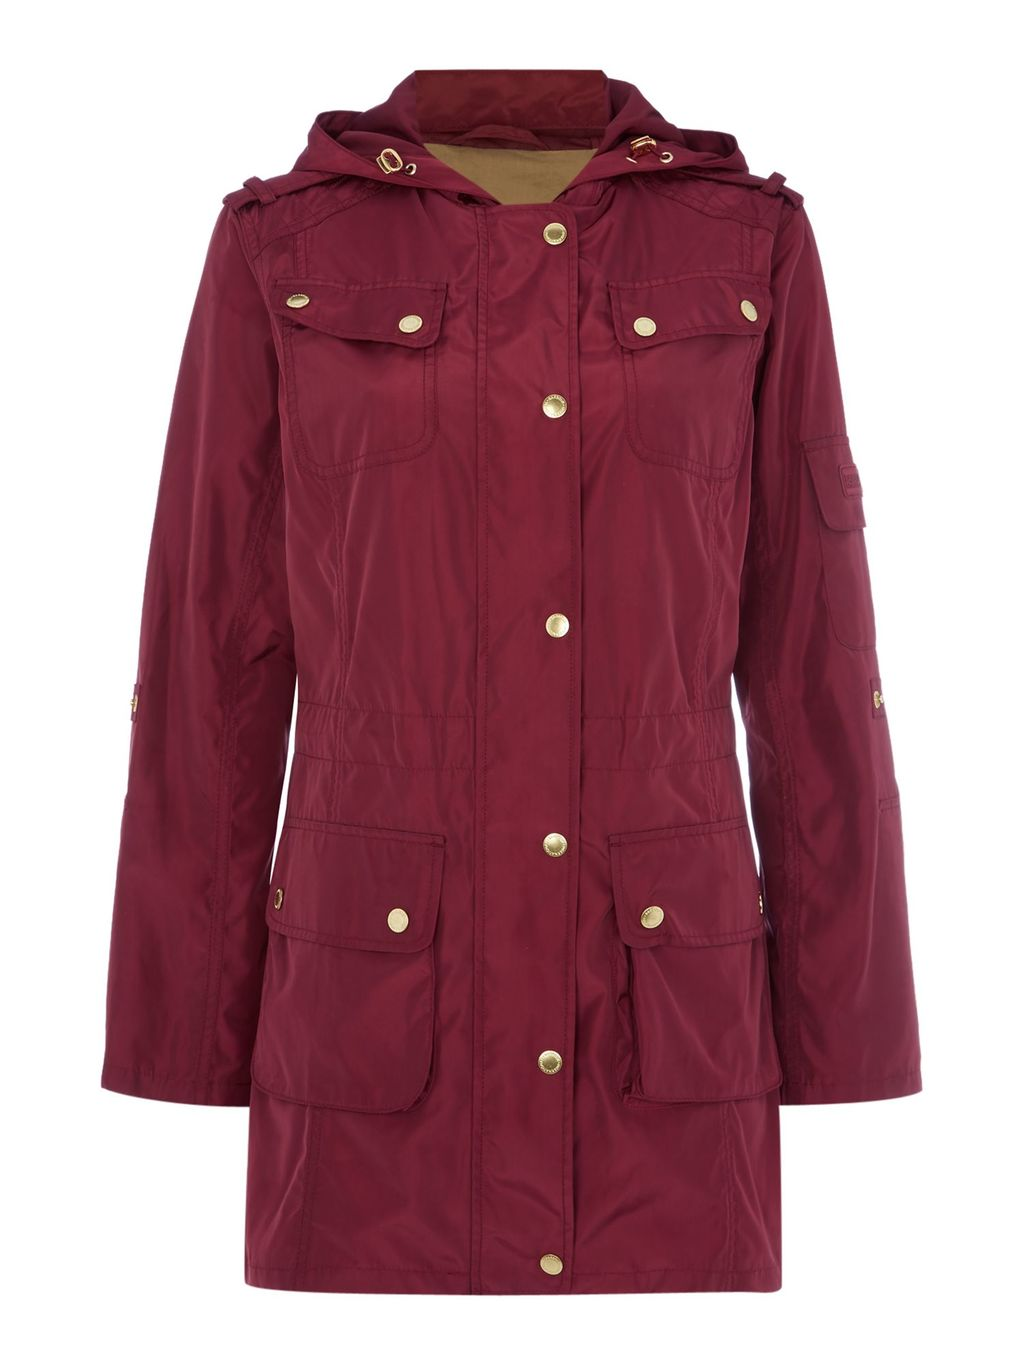 International Delter Casual Parka Jacket, Red - pattern: plain; length: below the bottom; bust detail: added detail/embellishment at bust; collar: funnel; style: parka; back detail: hood; predominant colour: burgundy; occasions: casual; fit: straight cut (boxy); fibres: cotton - 100%; hip detail: added detail/embellishment at hip; sleeve length: long sleeve; sleeve style: standard; texture group: cotton feel fabrics; collar break: high; pattern type: fabric; season: a/w 2015